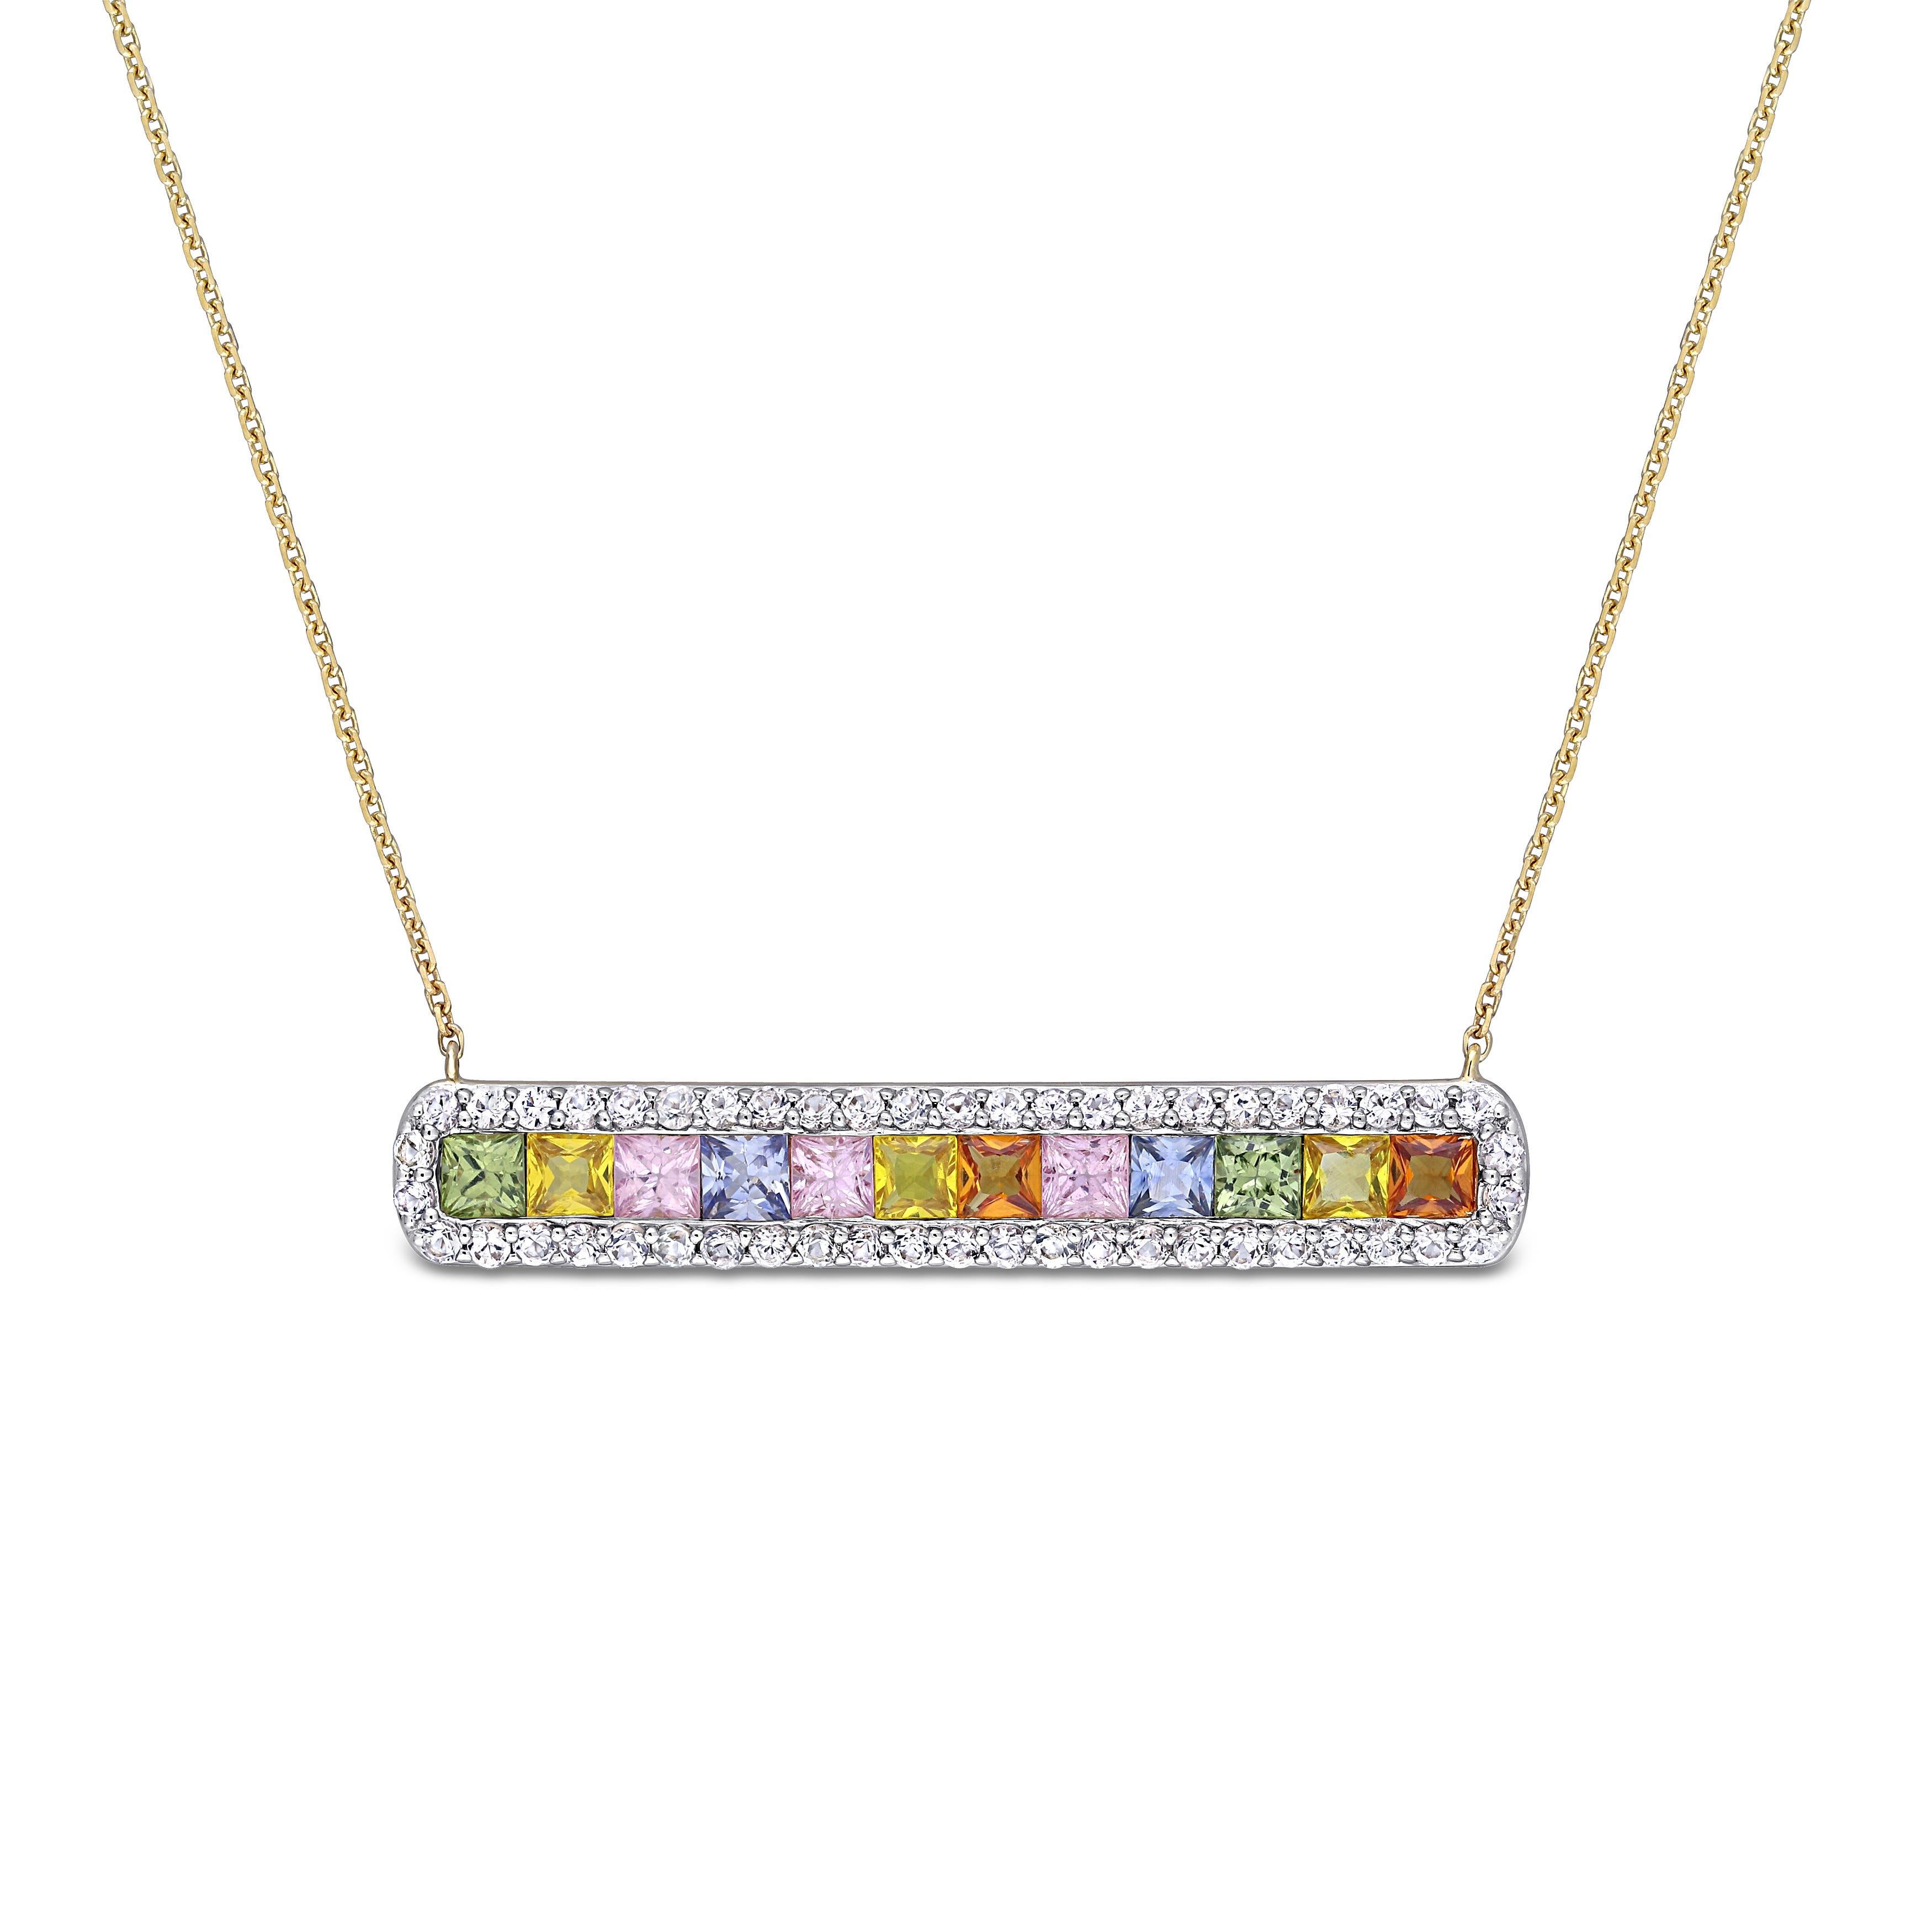 Rainbow Created Sapphire & Diamond Bar Necklace in 14k Yellow Gold